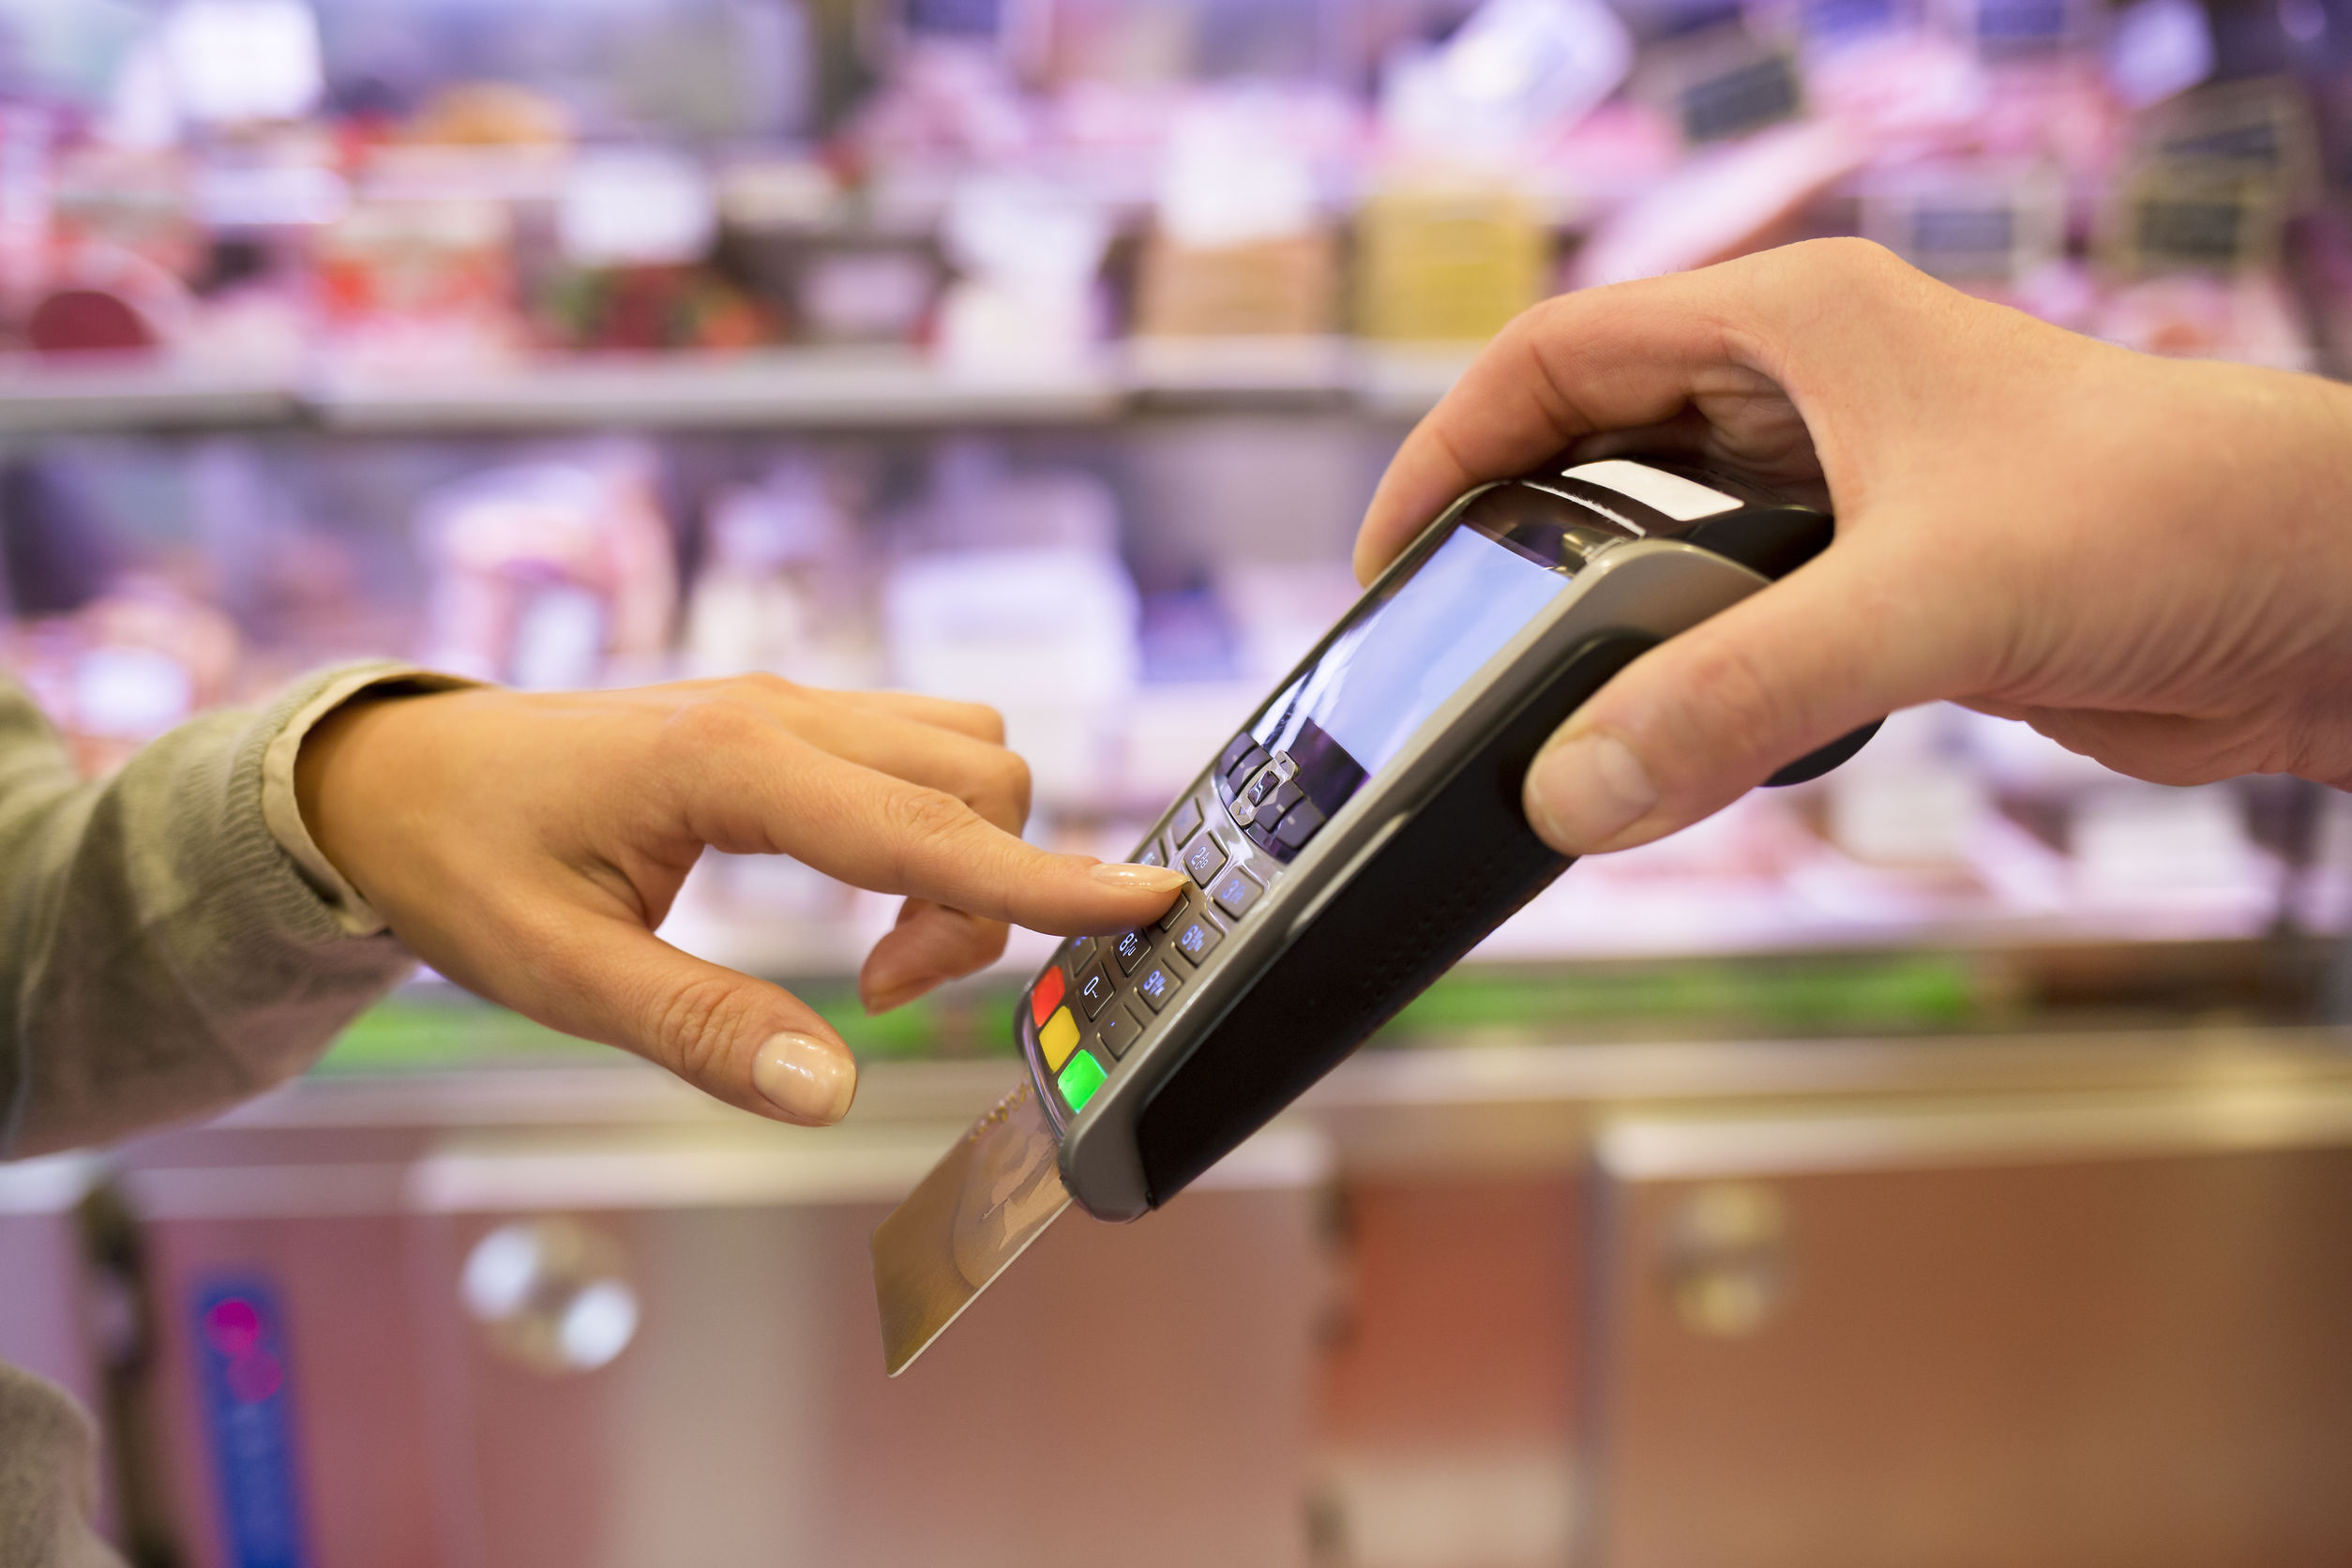 pay by credit card at store